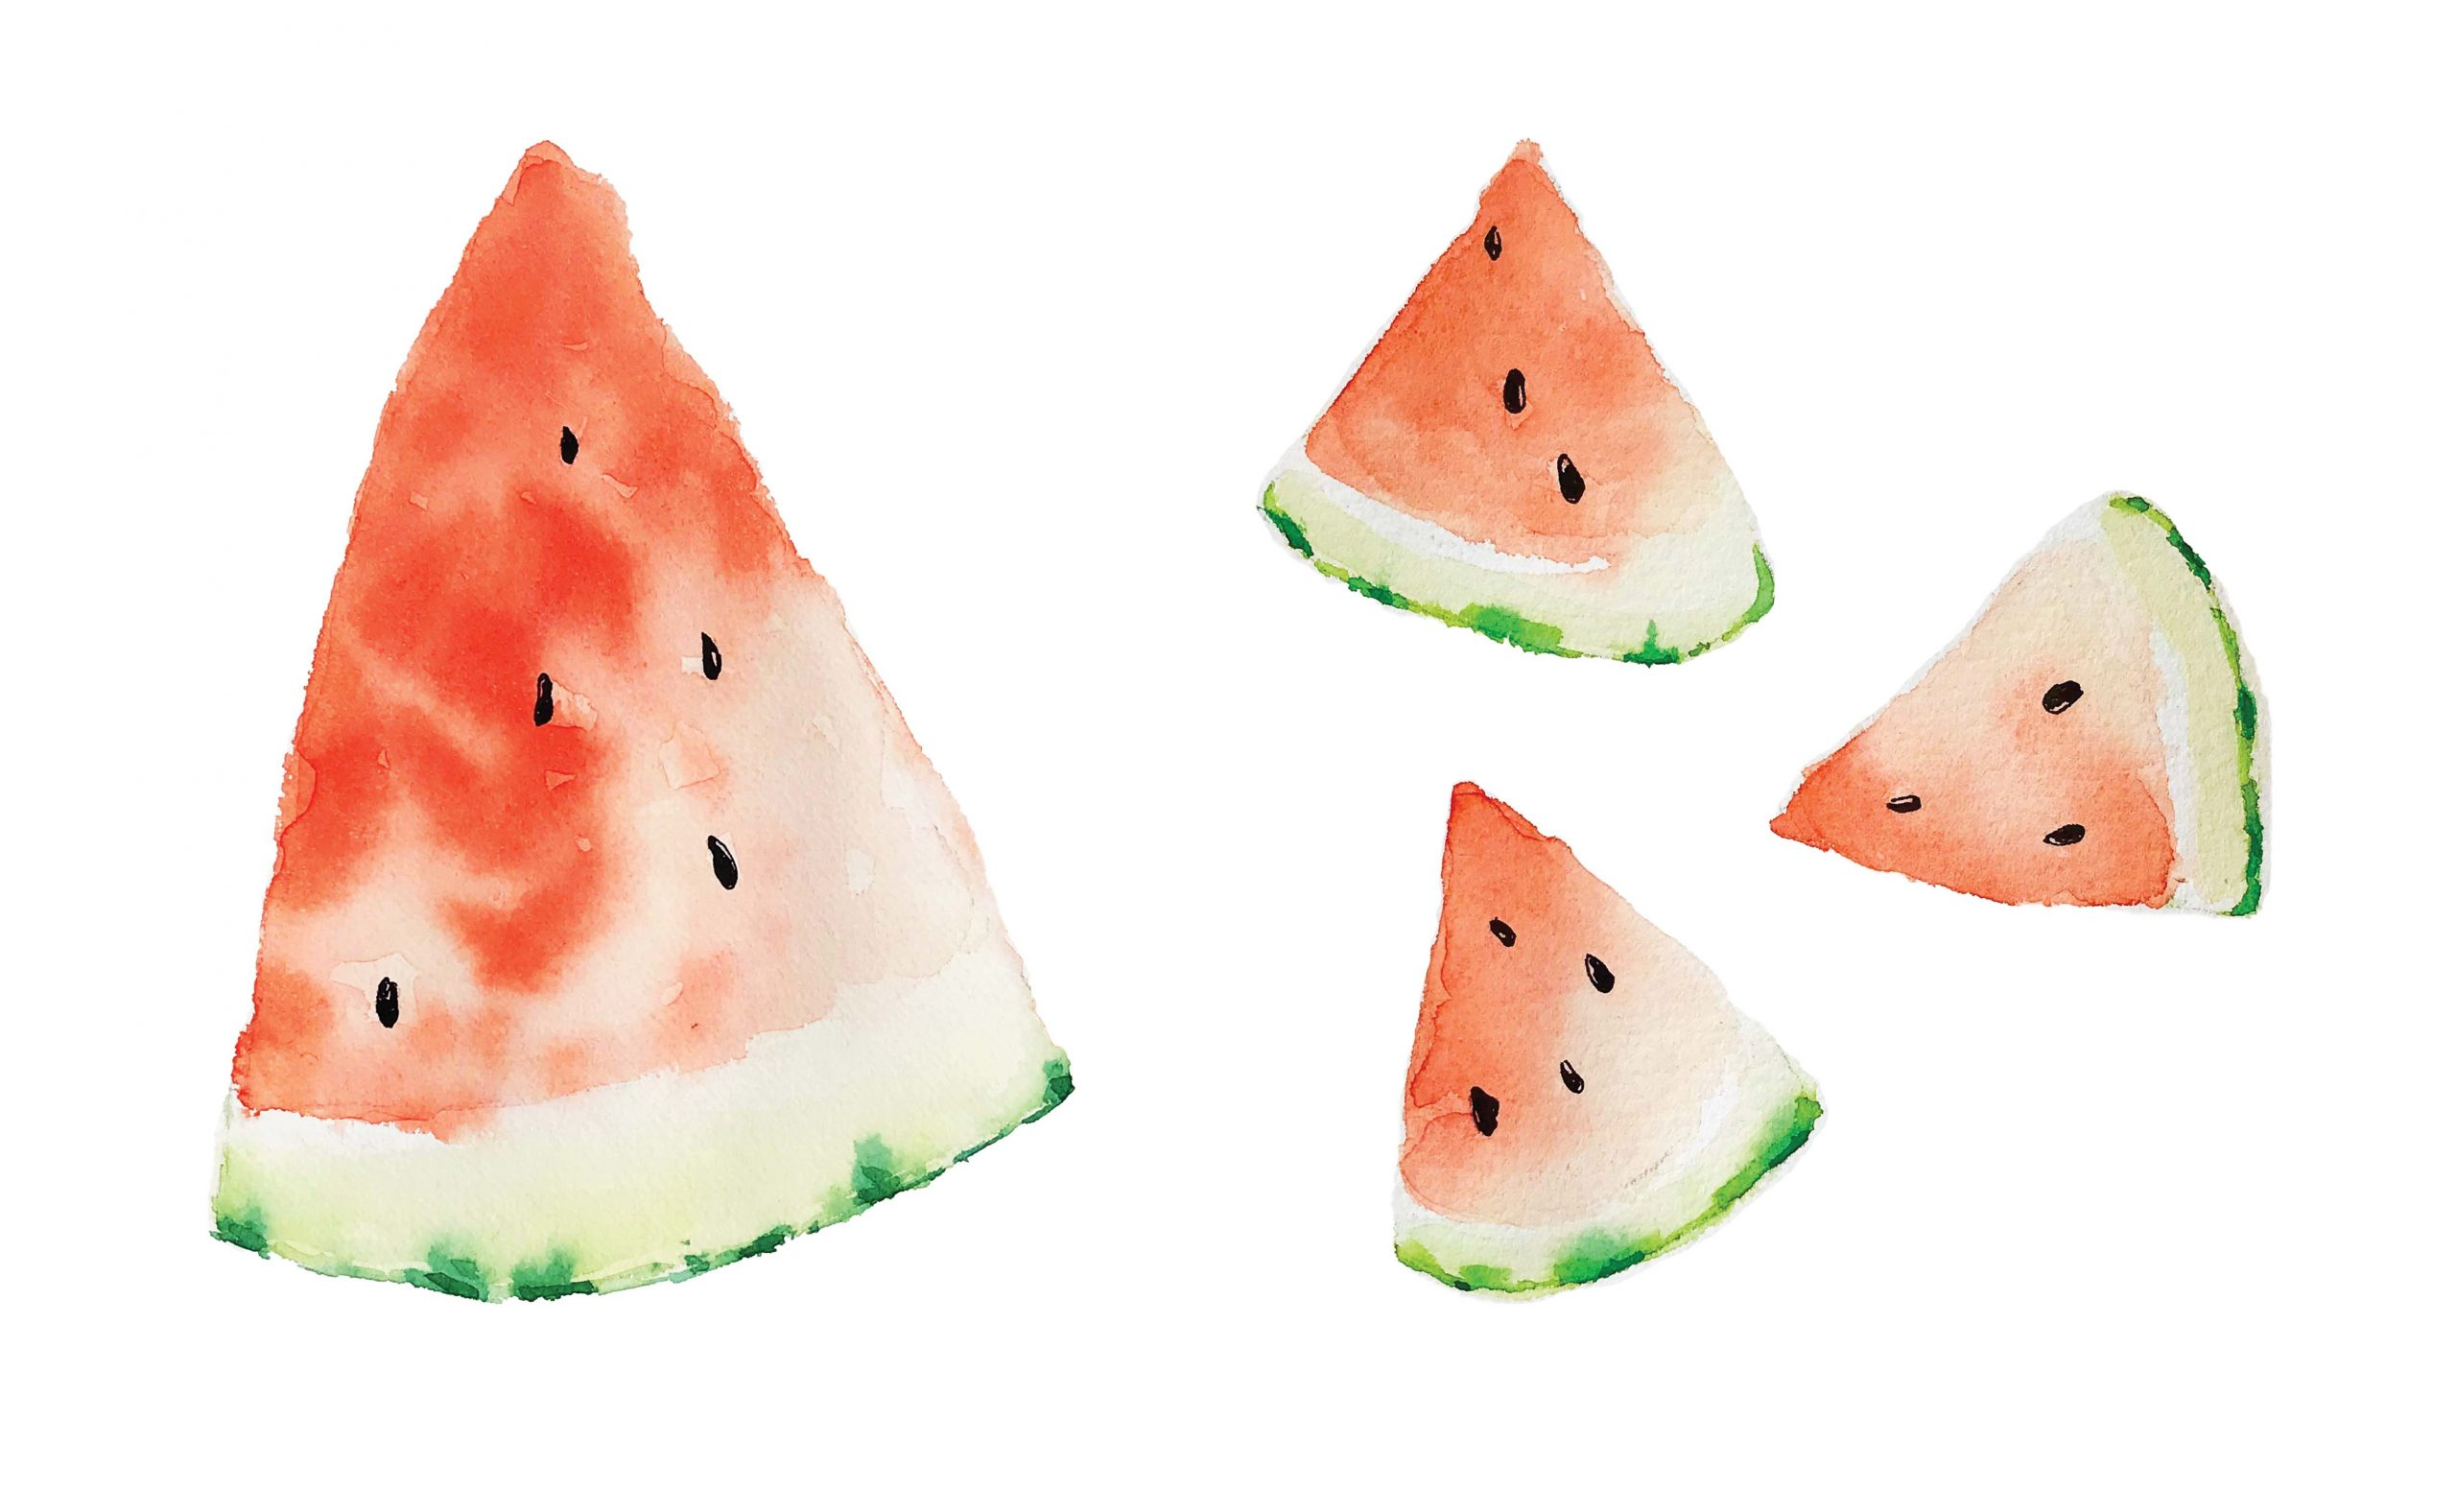 Painting Watermelon with Watercolor in easy and cool steps